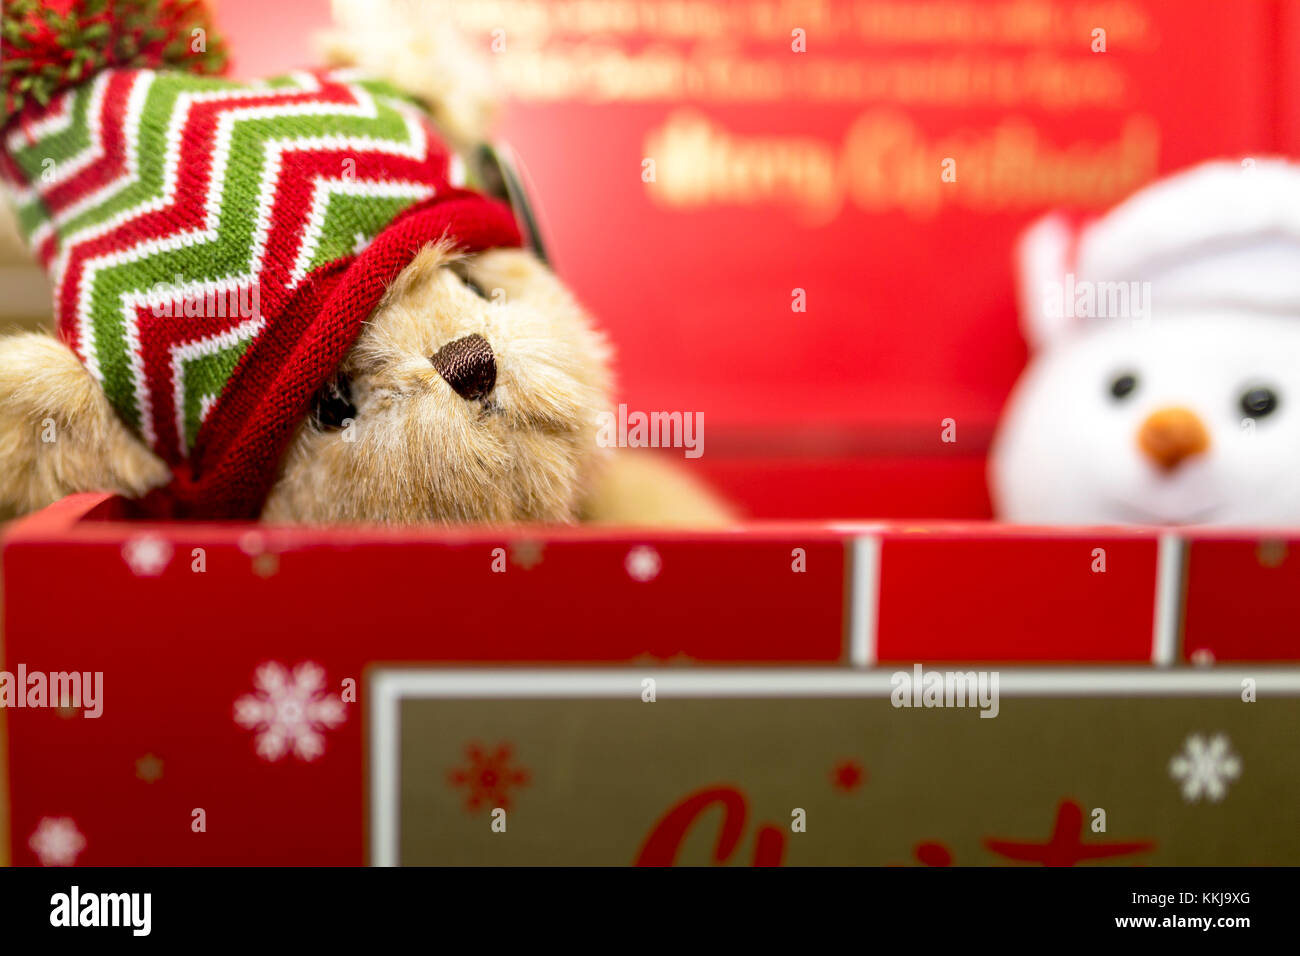 Vintage festive brown teddy bear wearing a woolly hat in a red Christmas gift box with a soft cuddly toy snowman - Stock Image